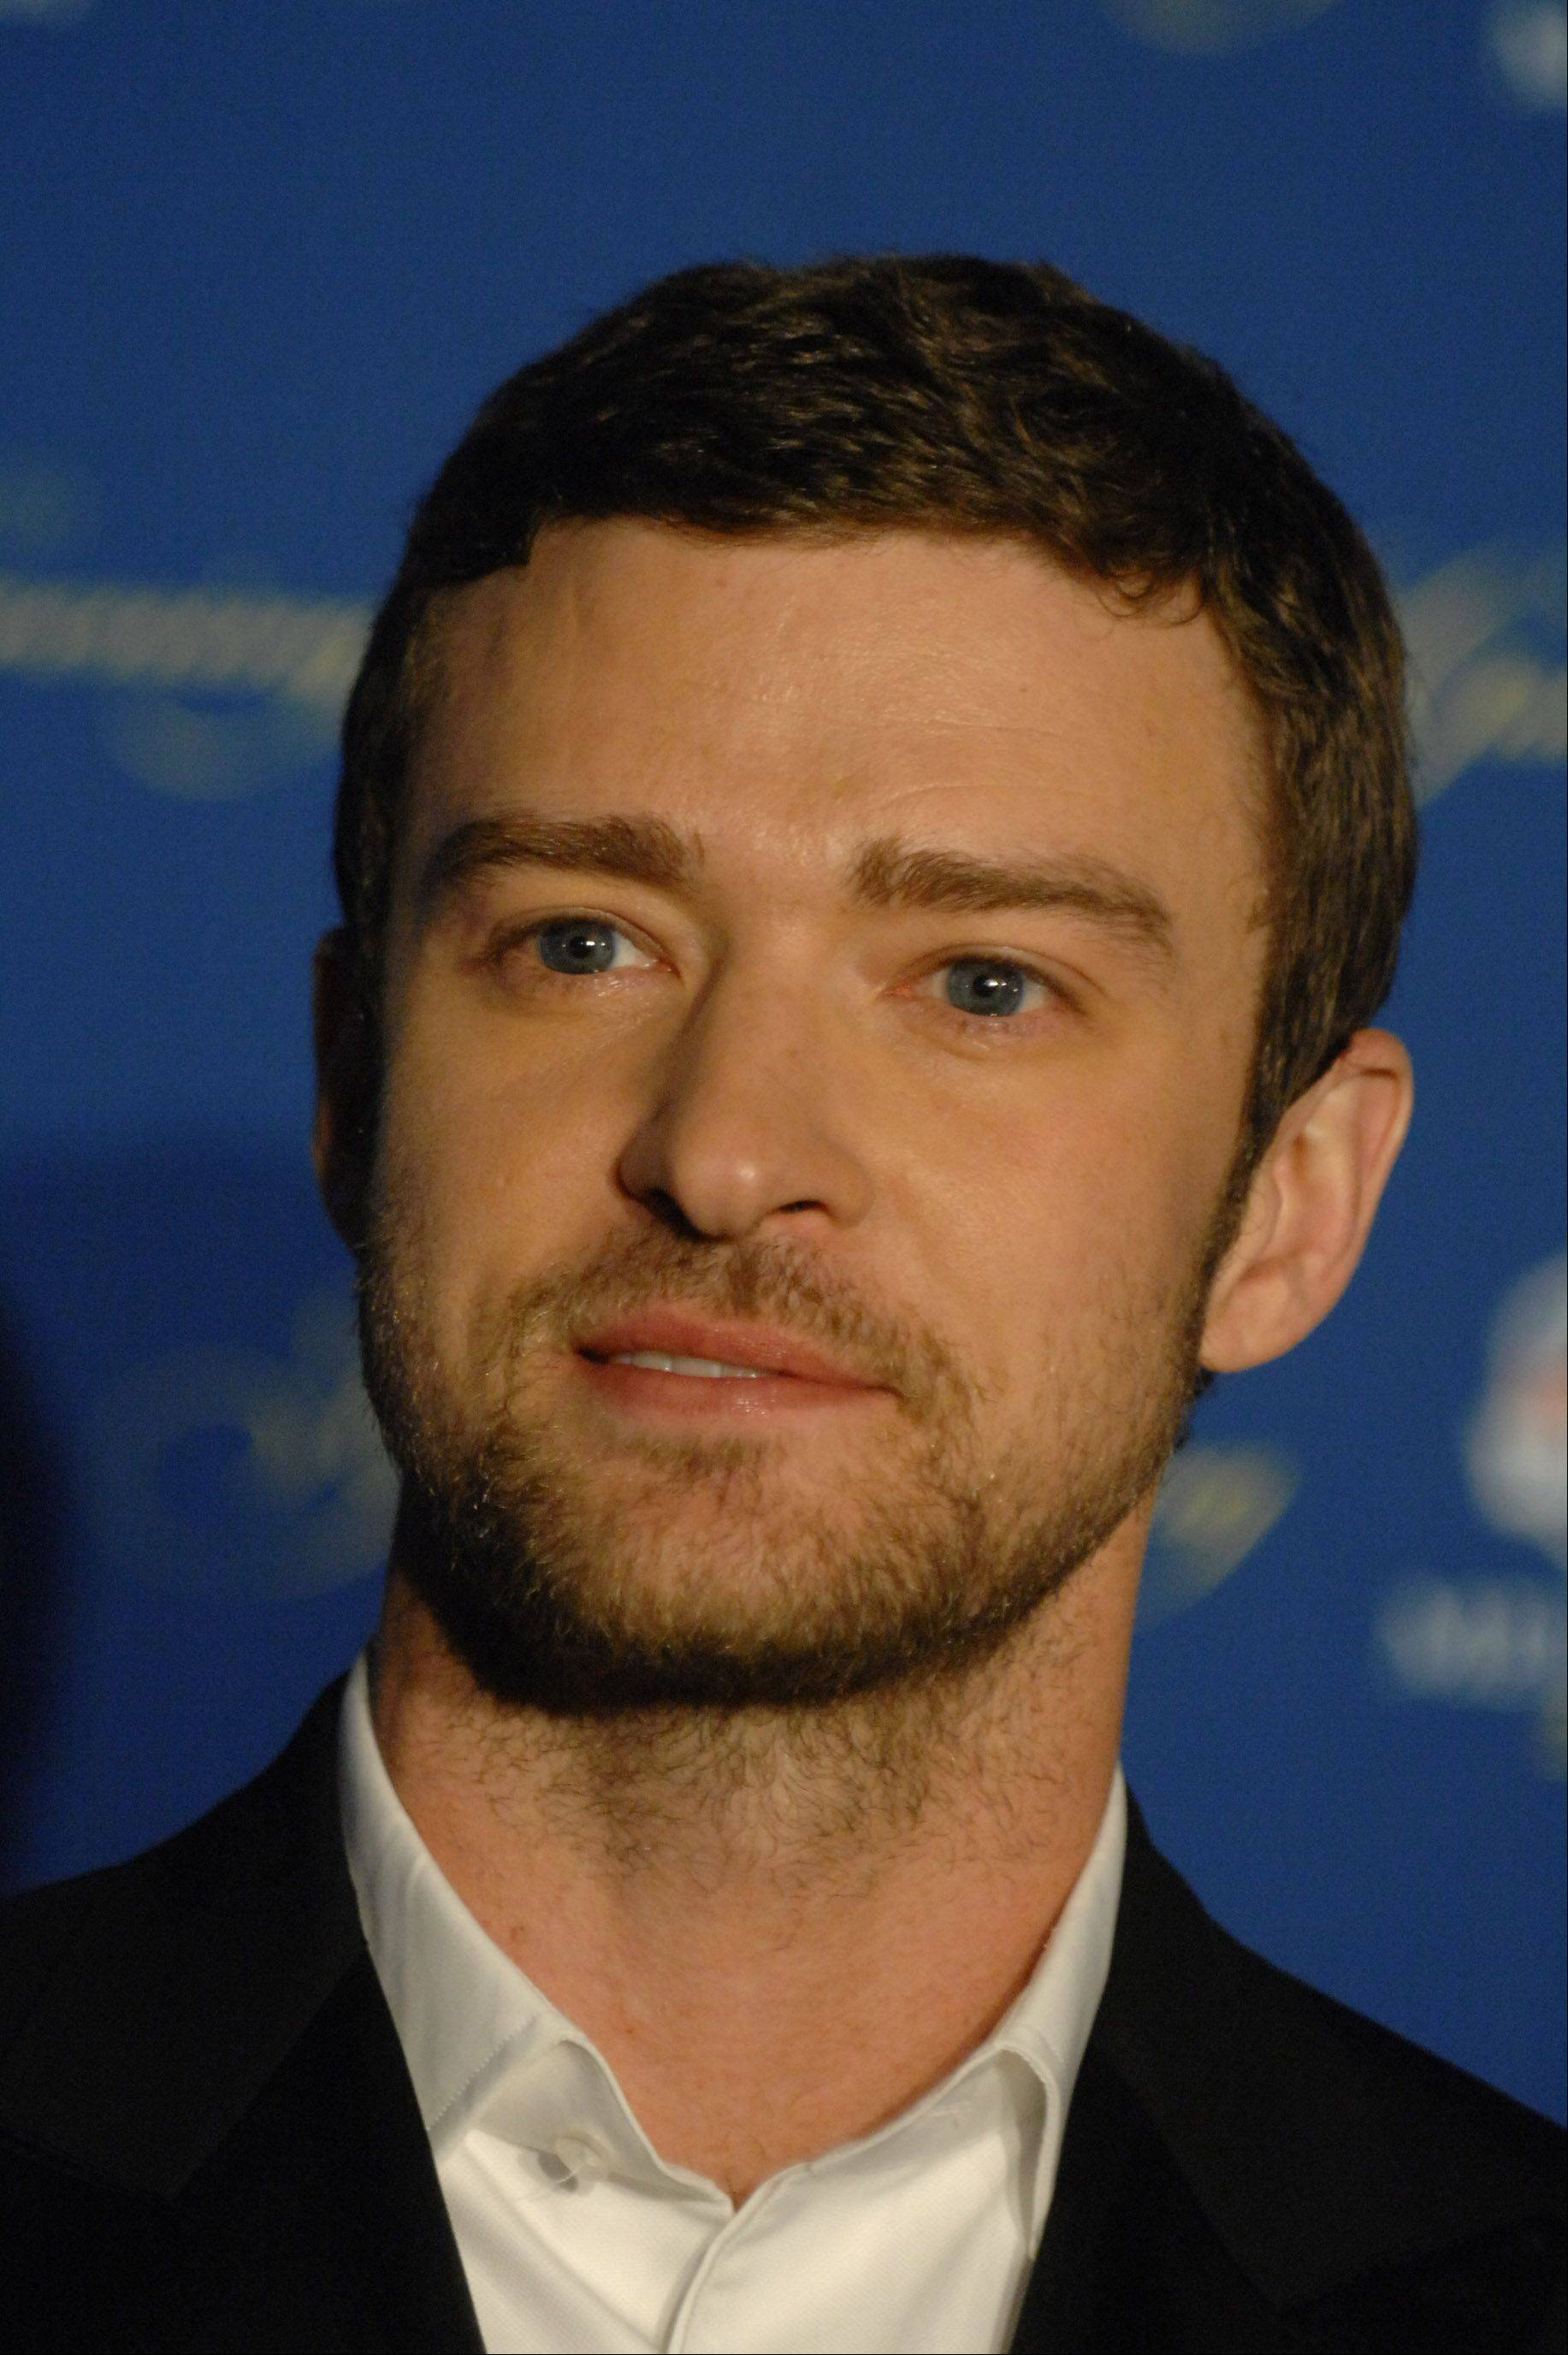 Justin Timberlake walks the 39th Ryder Cup Gala red carpet at the Akoo Theatre in Rosemont Wednesday.